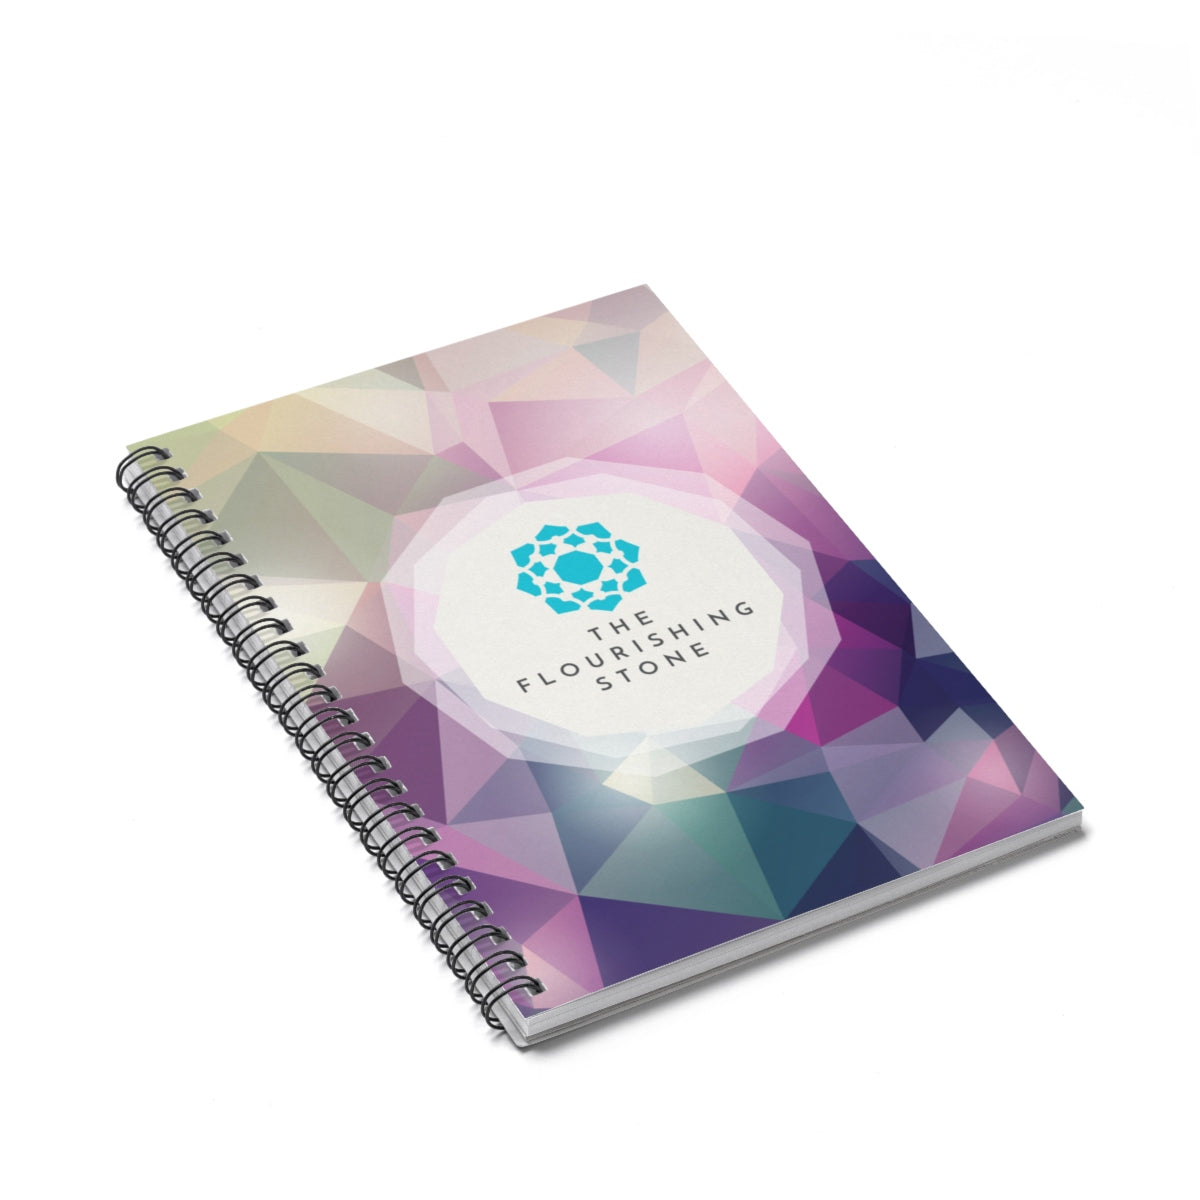 Crystal Spiral Notebook - Ruled Line